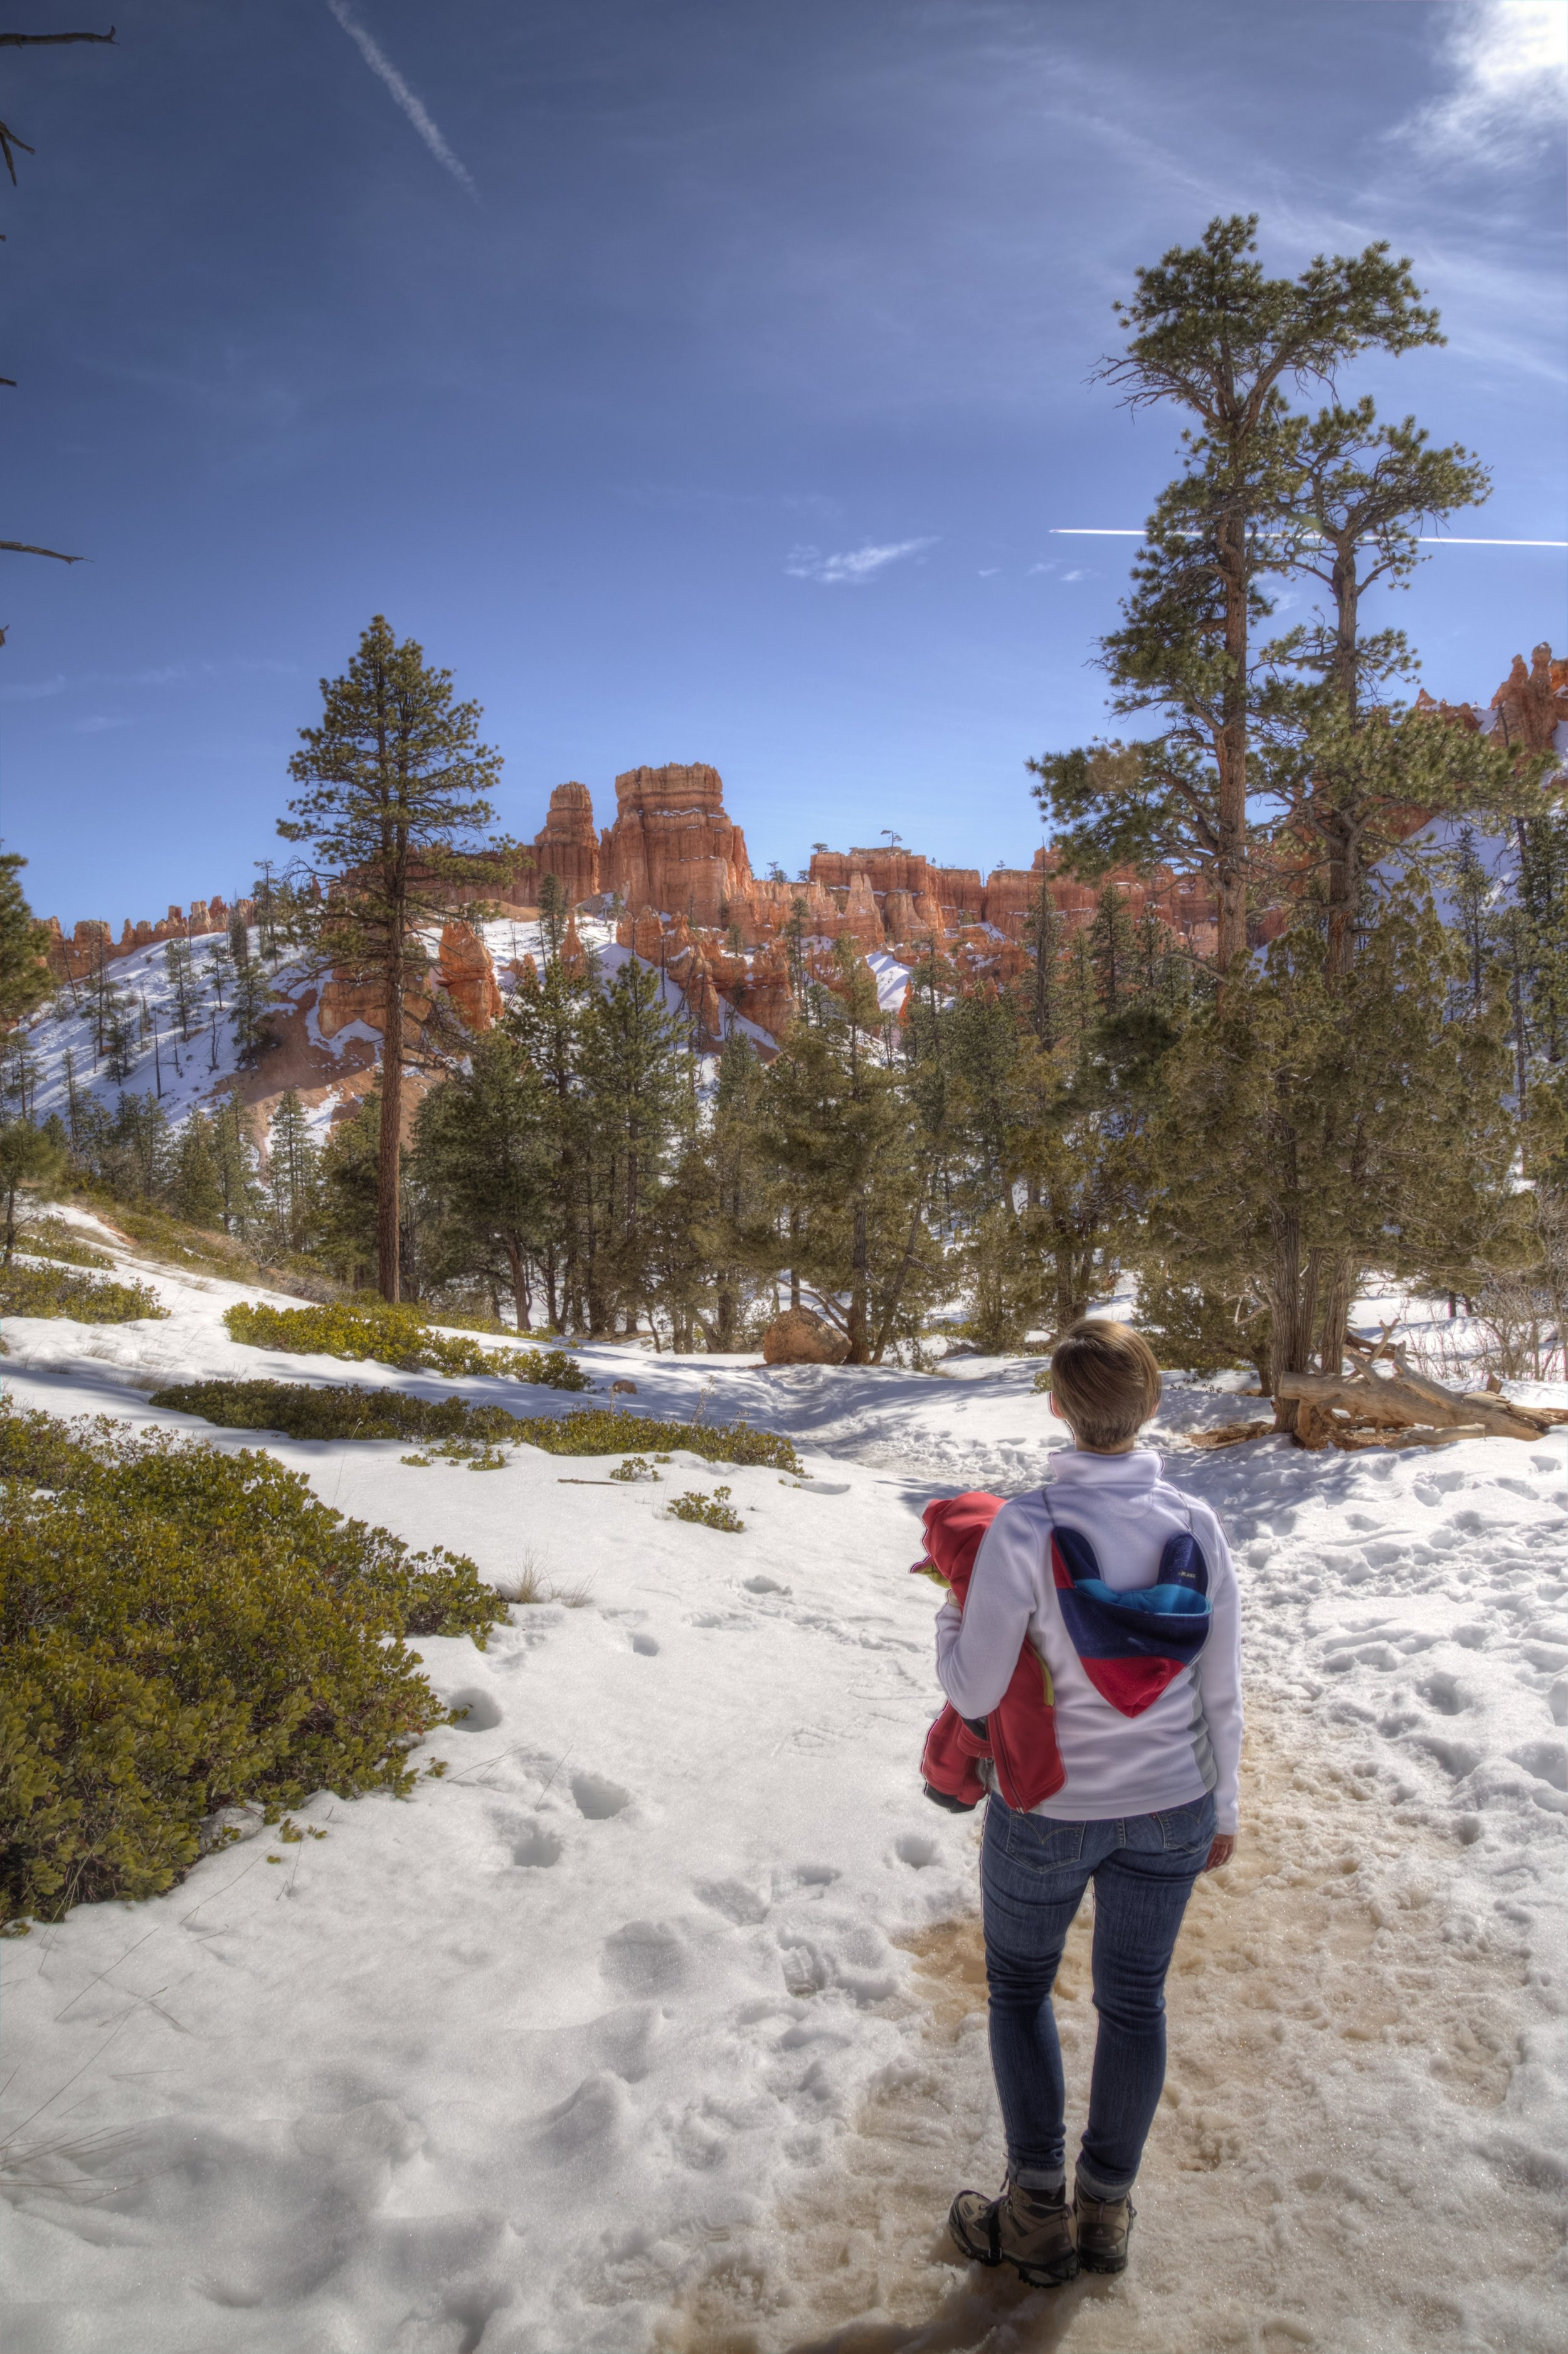 Epic (and spontaneous) wintertime hike @  Bryce Canyon National Park.   @roger.cummings